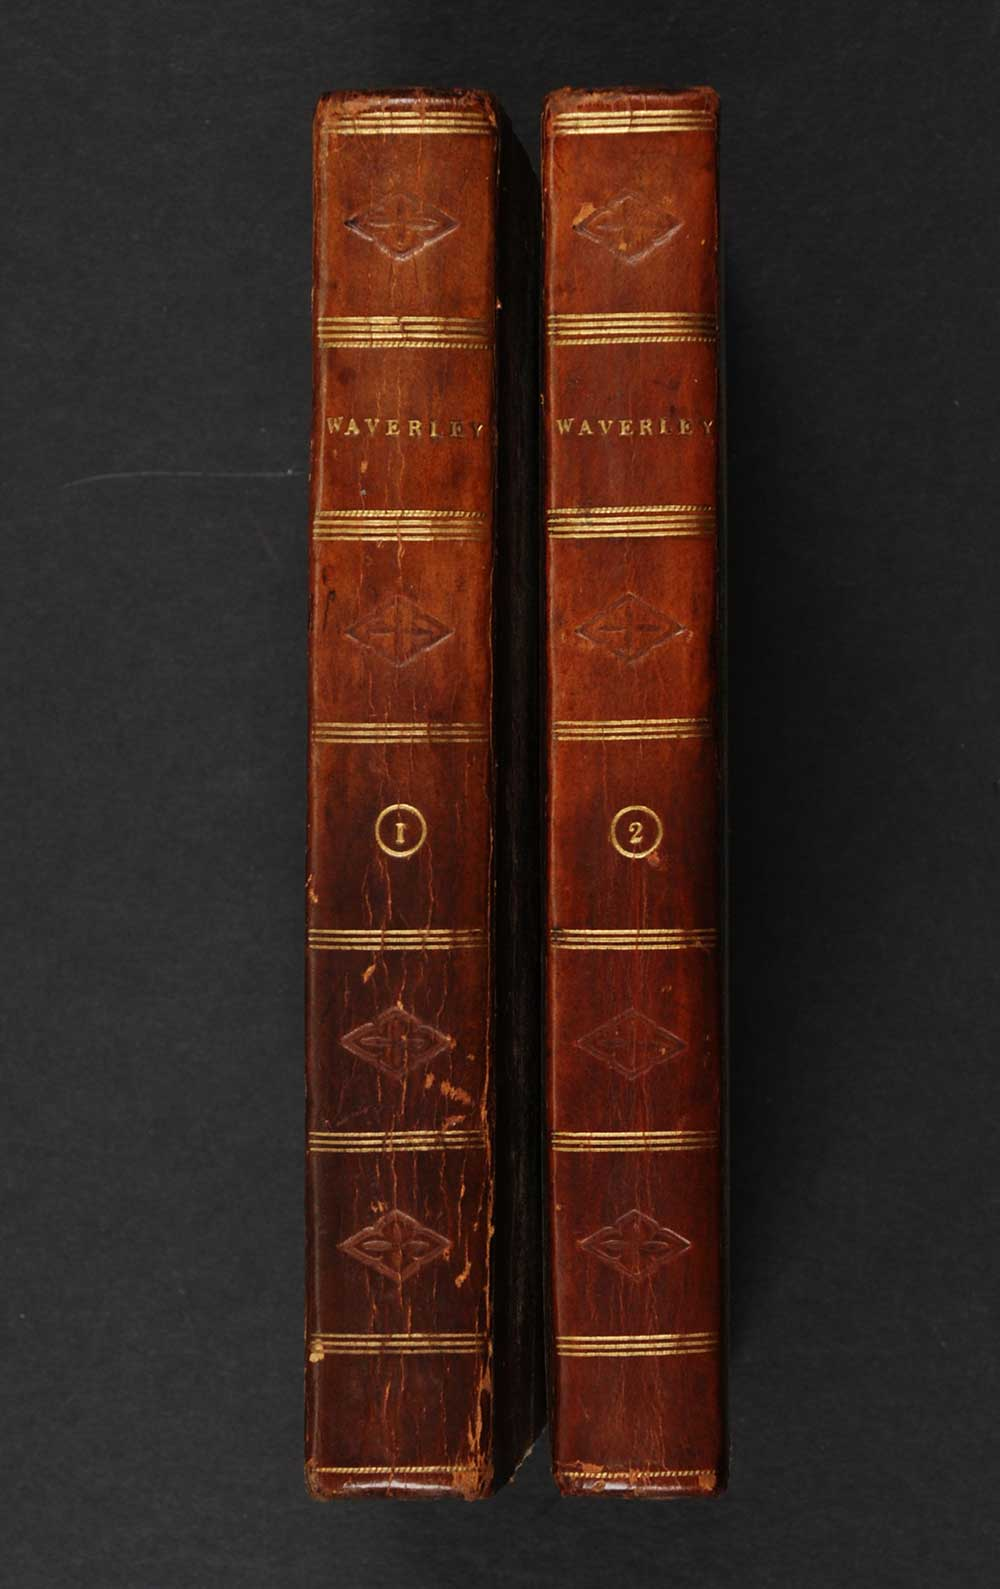 [Sir Walter Scott]. <em>Waverley, or, 'Tis sixty years since.</em> [1st edition]. Edinburgh: Printed by James Ballantyne and Co. for Archibald Constable and Co., Edinburgh; and Longman, Hurst, Rees, Orme, and Brown, London, 1814. Three volumes; Vol. 1, 2 displayed.